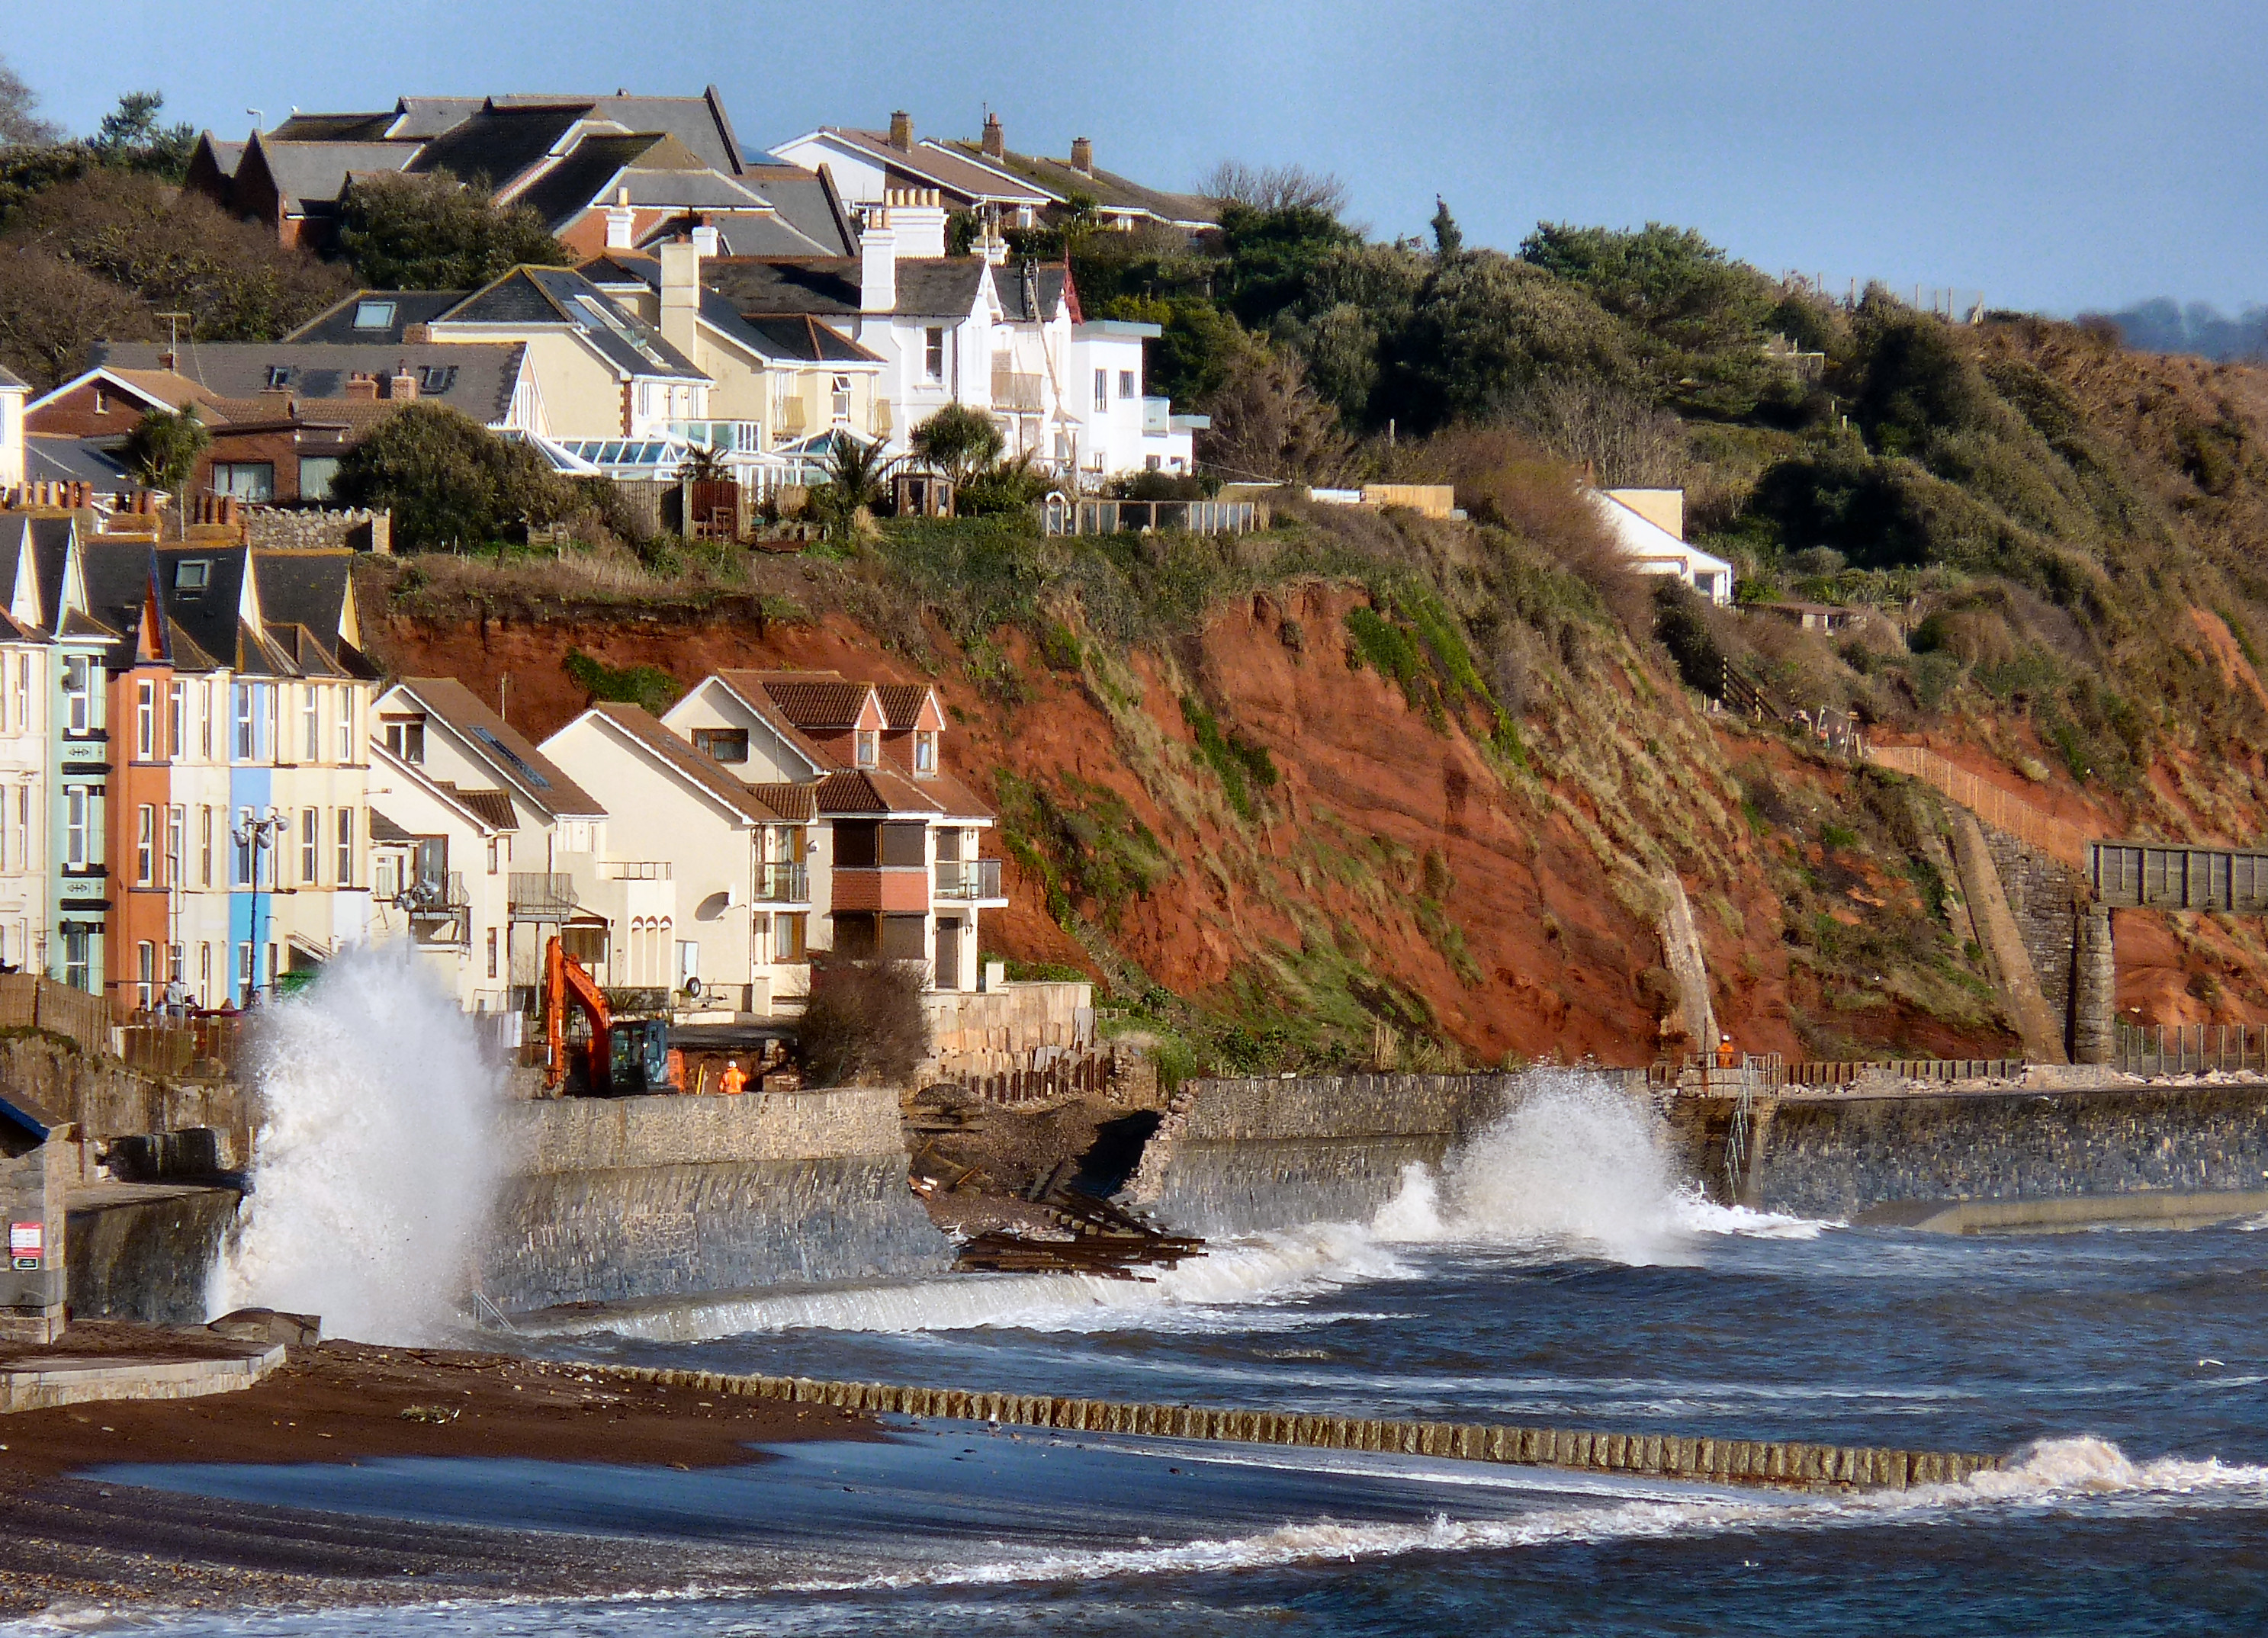 South_Devon_Railway_sea_wall_breach_February_2014_google